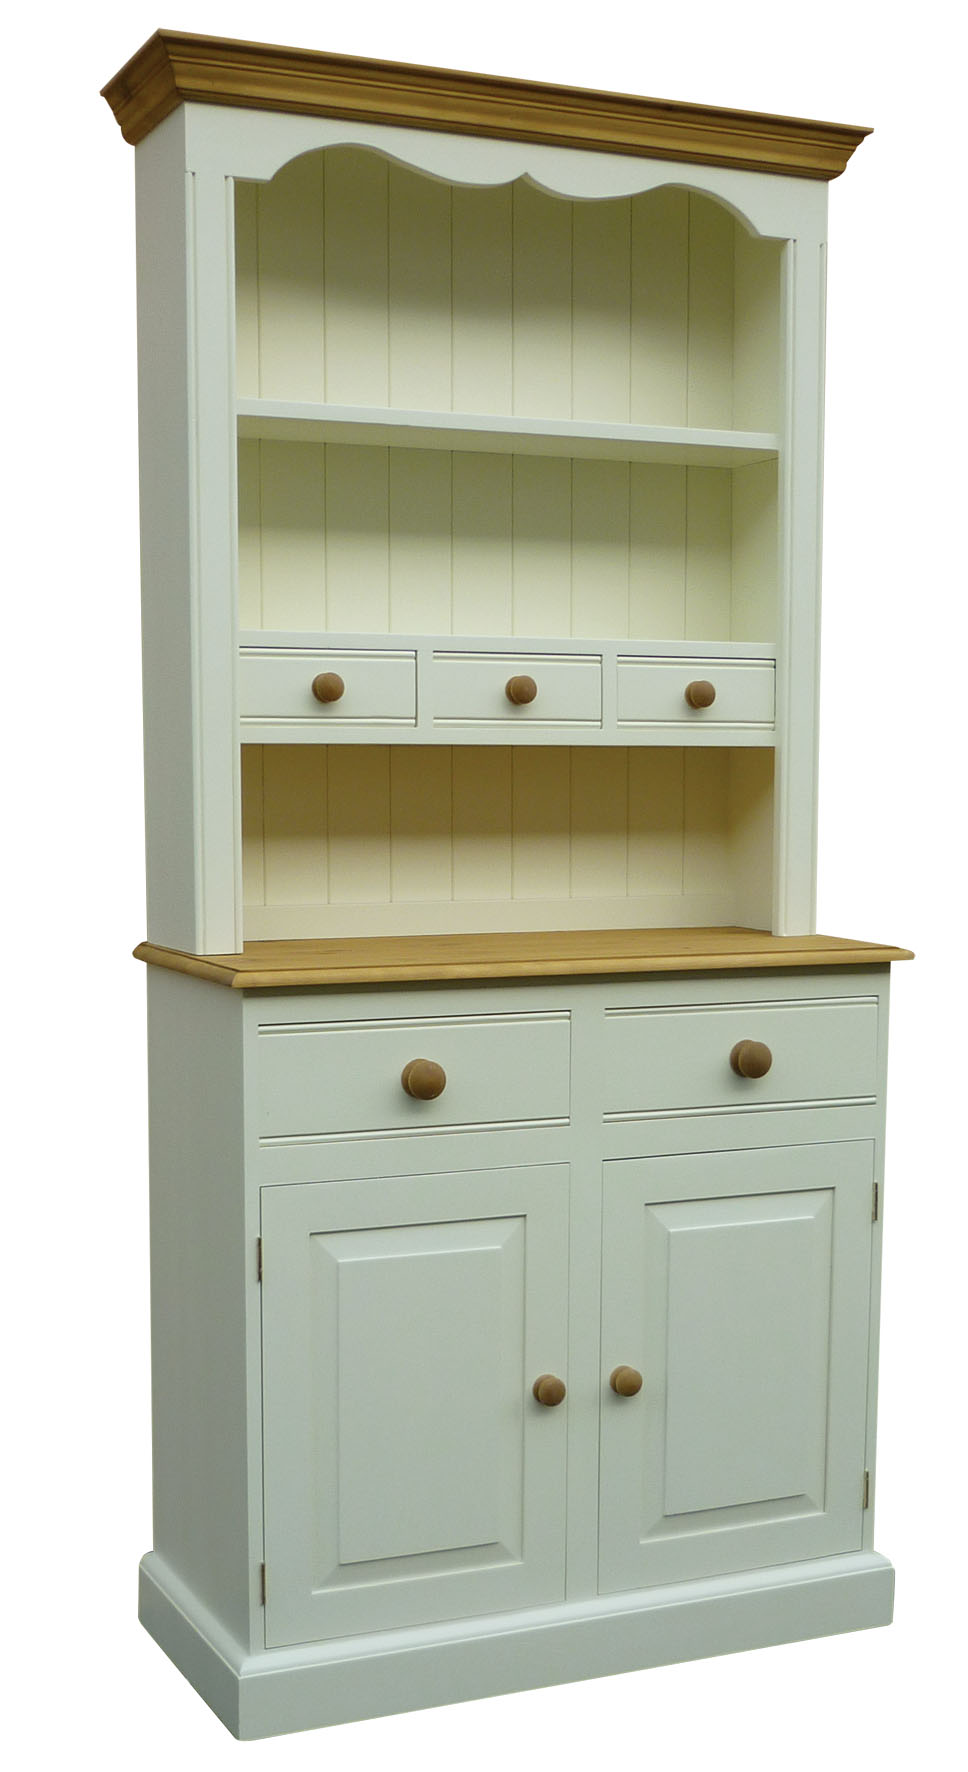 Christy bird antiques household and office furniture for Traditional kitchen dresser